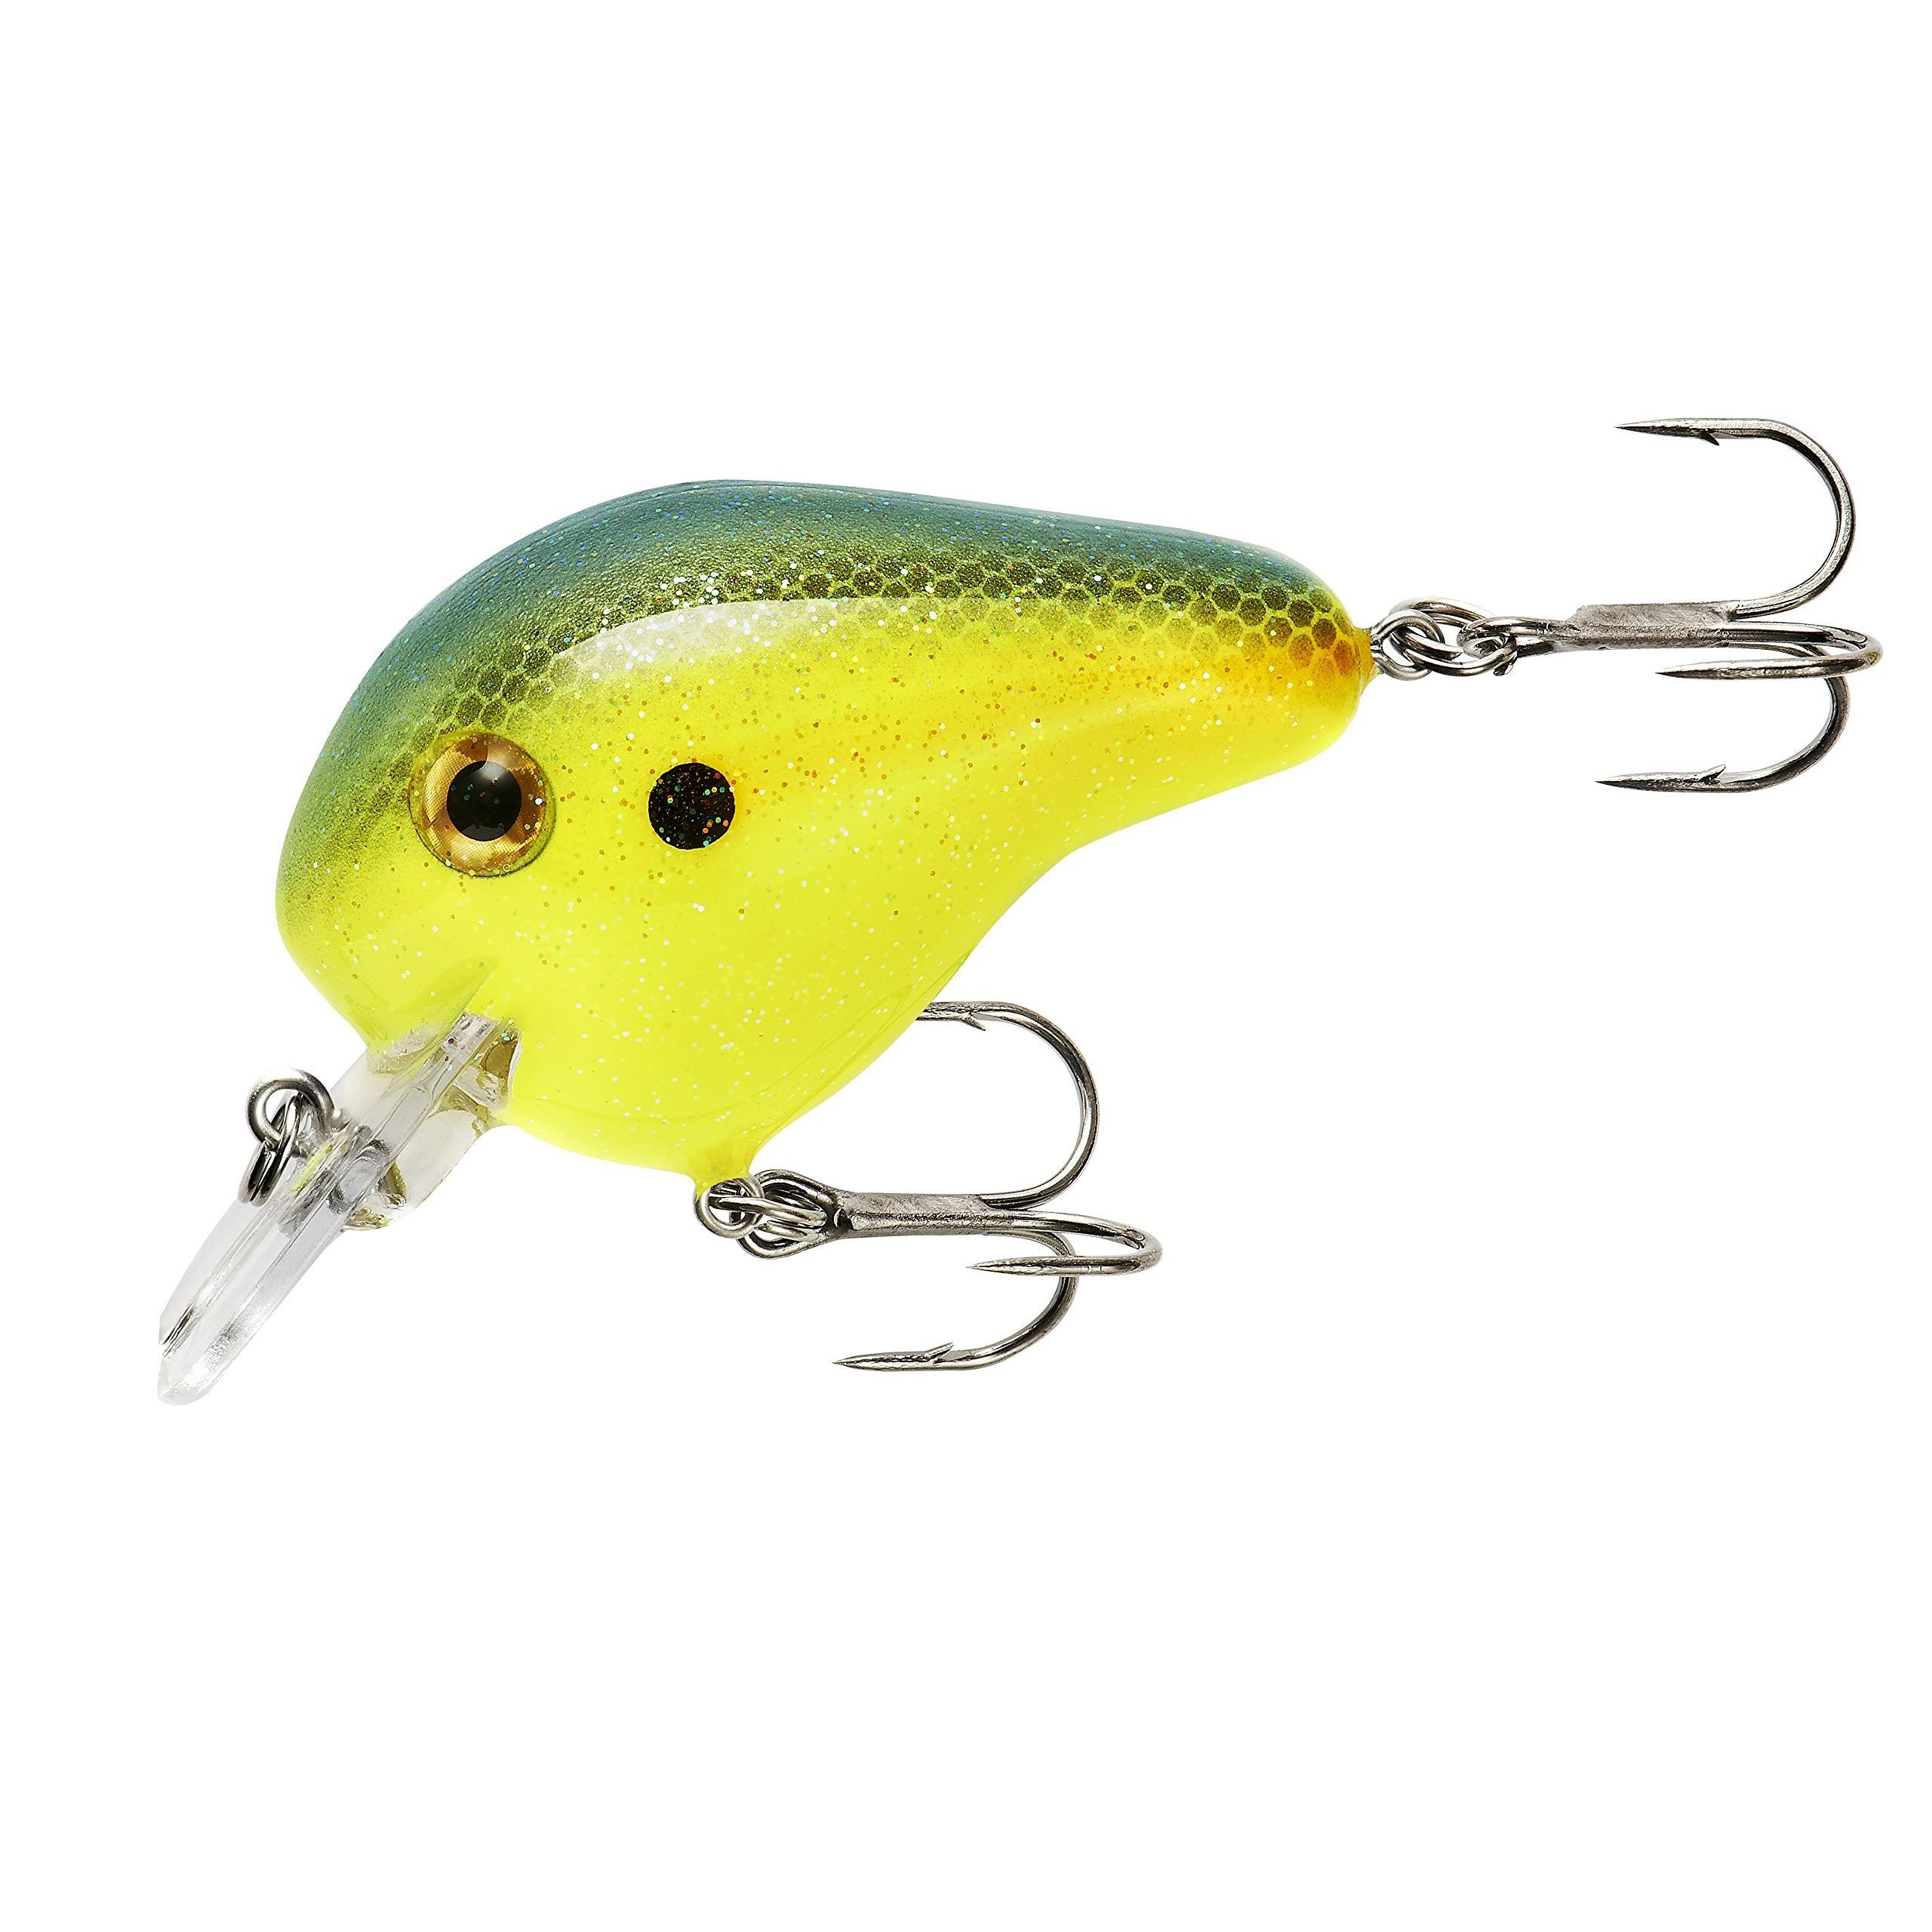 Norman Fat Boy Chartreuse Sexy Shad